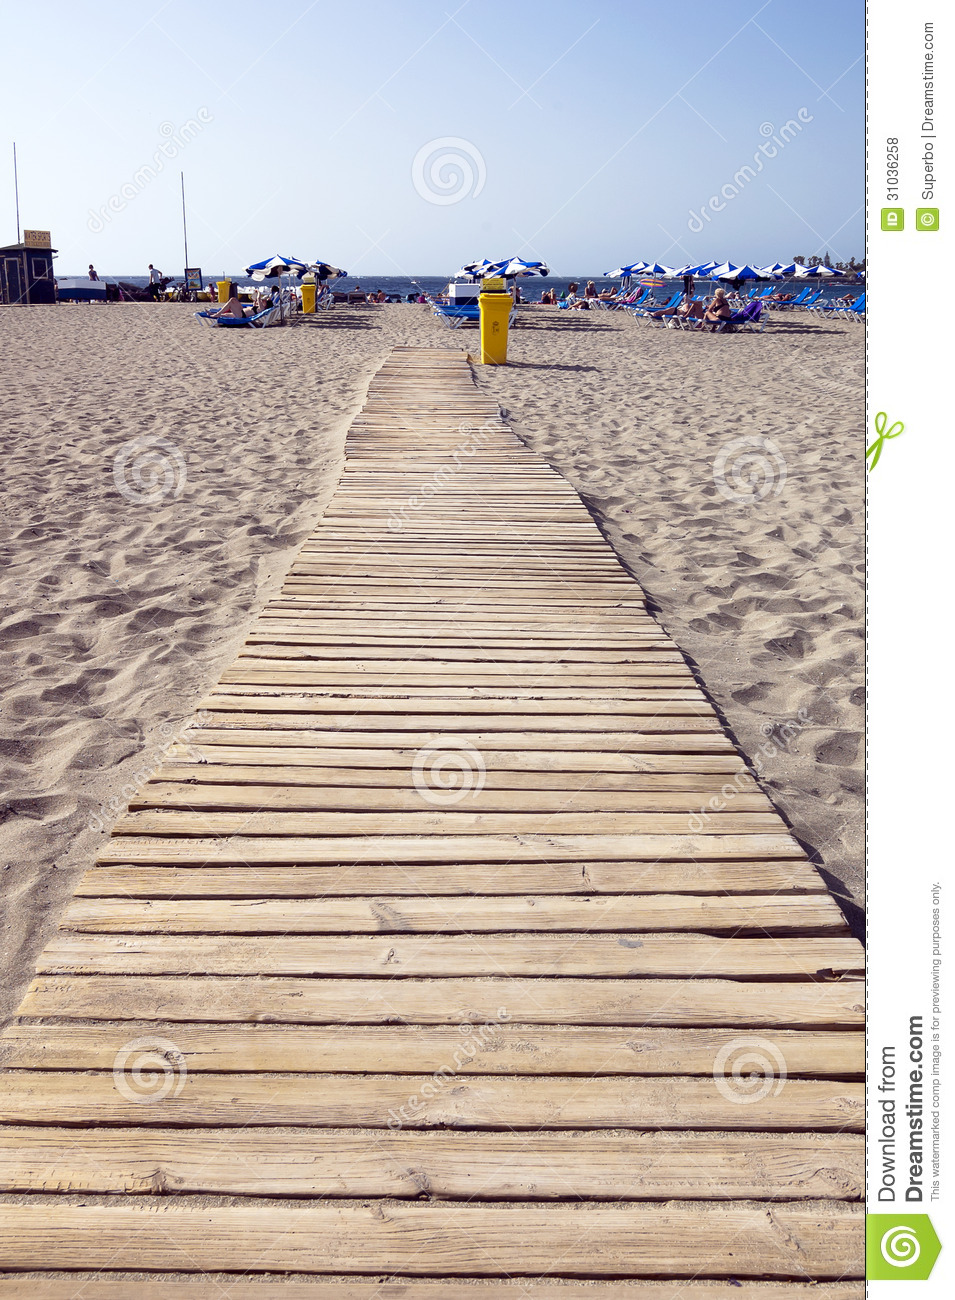 Wooden Walkway Stock Image Cartoondealer Com 78103105